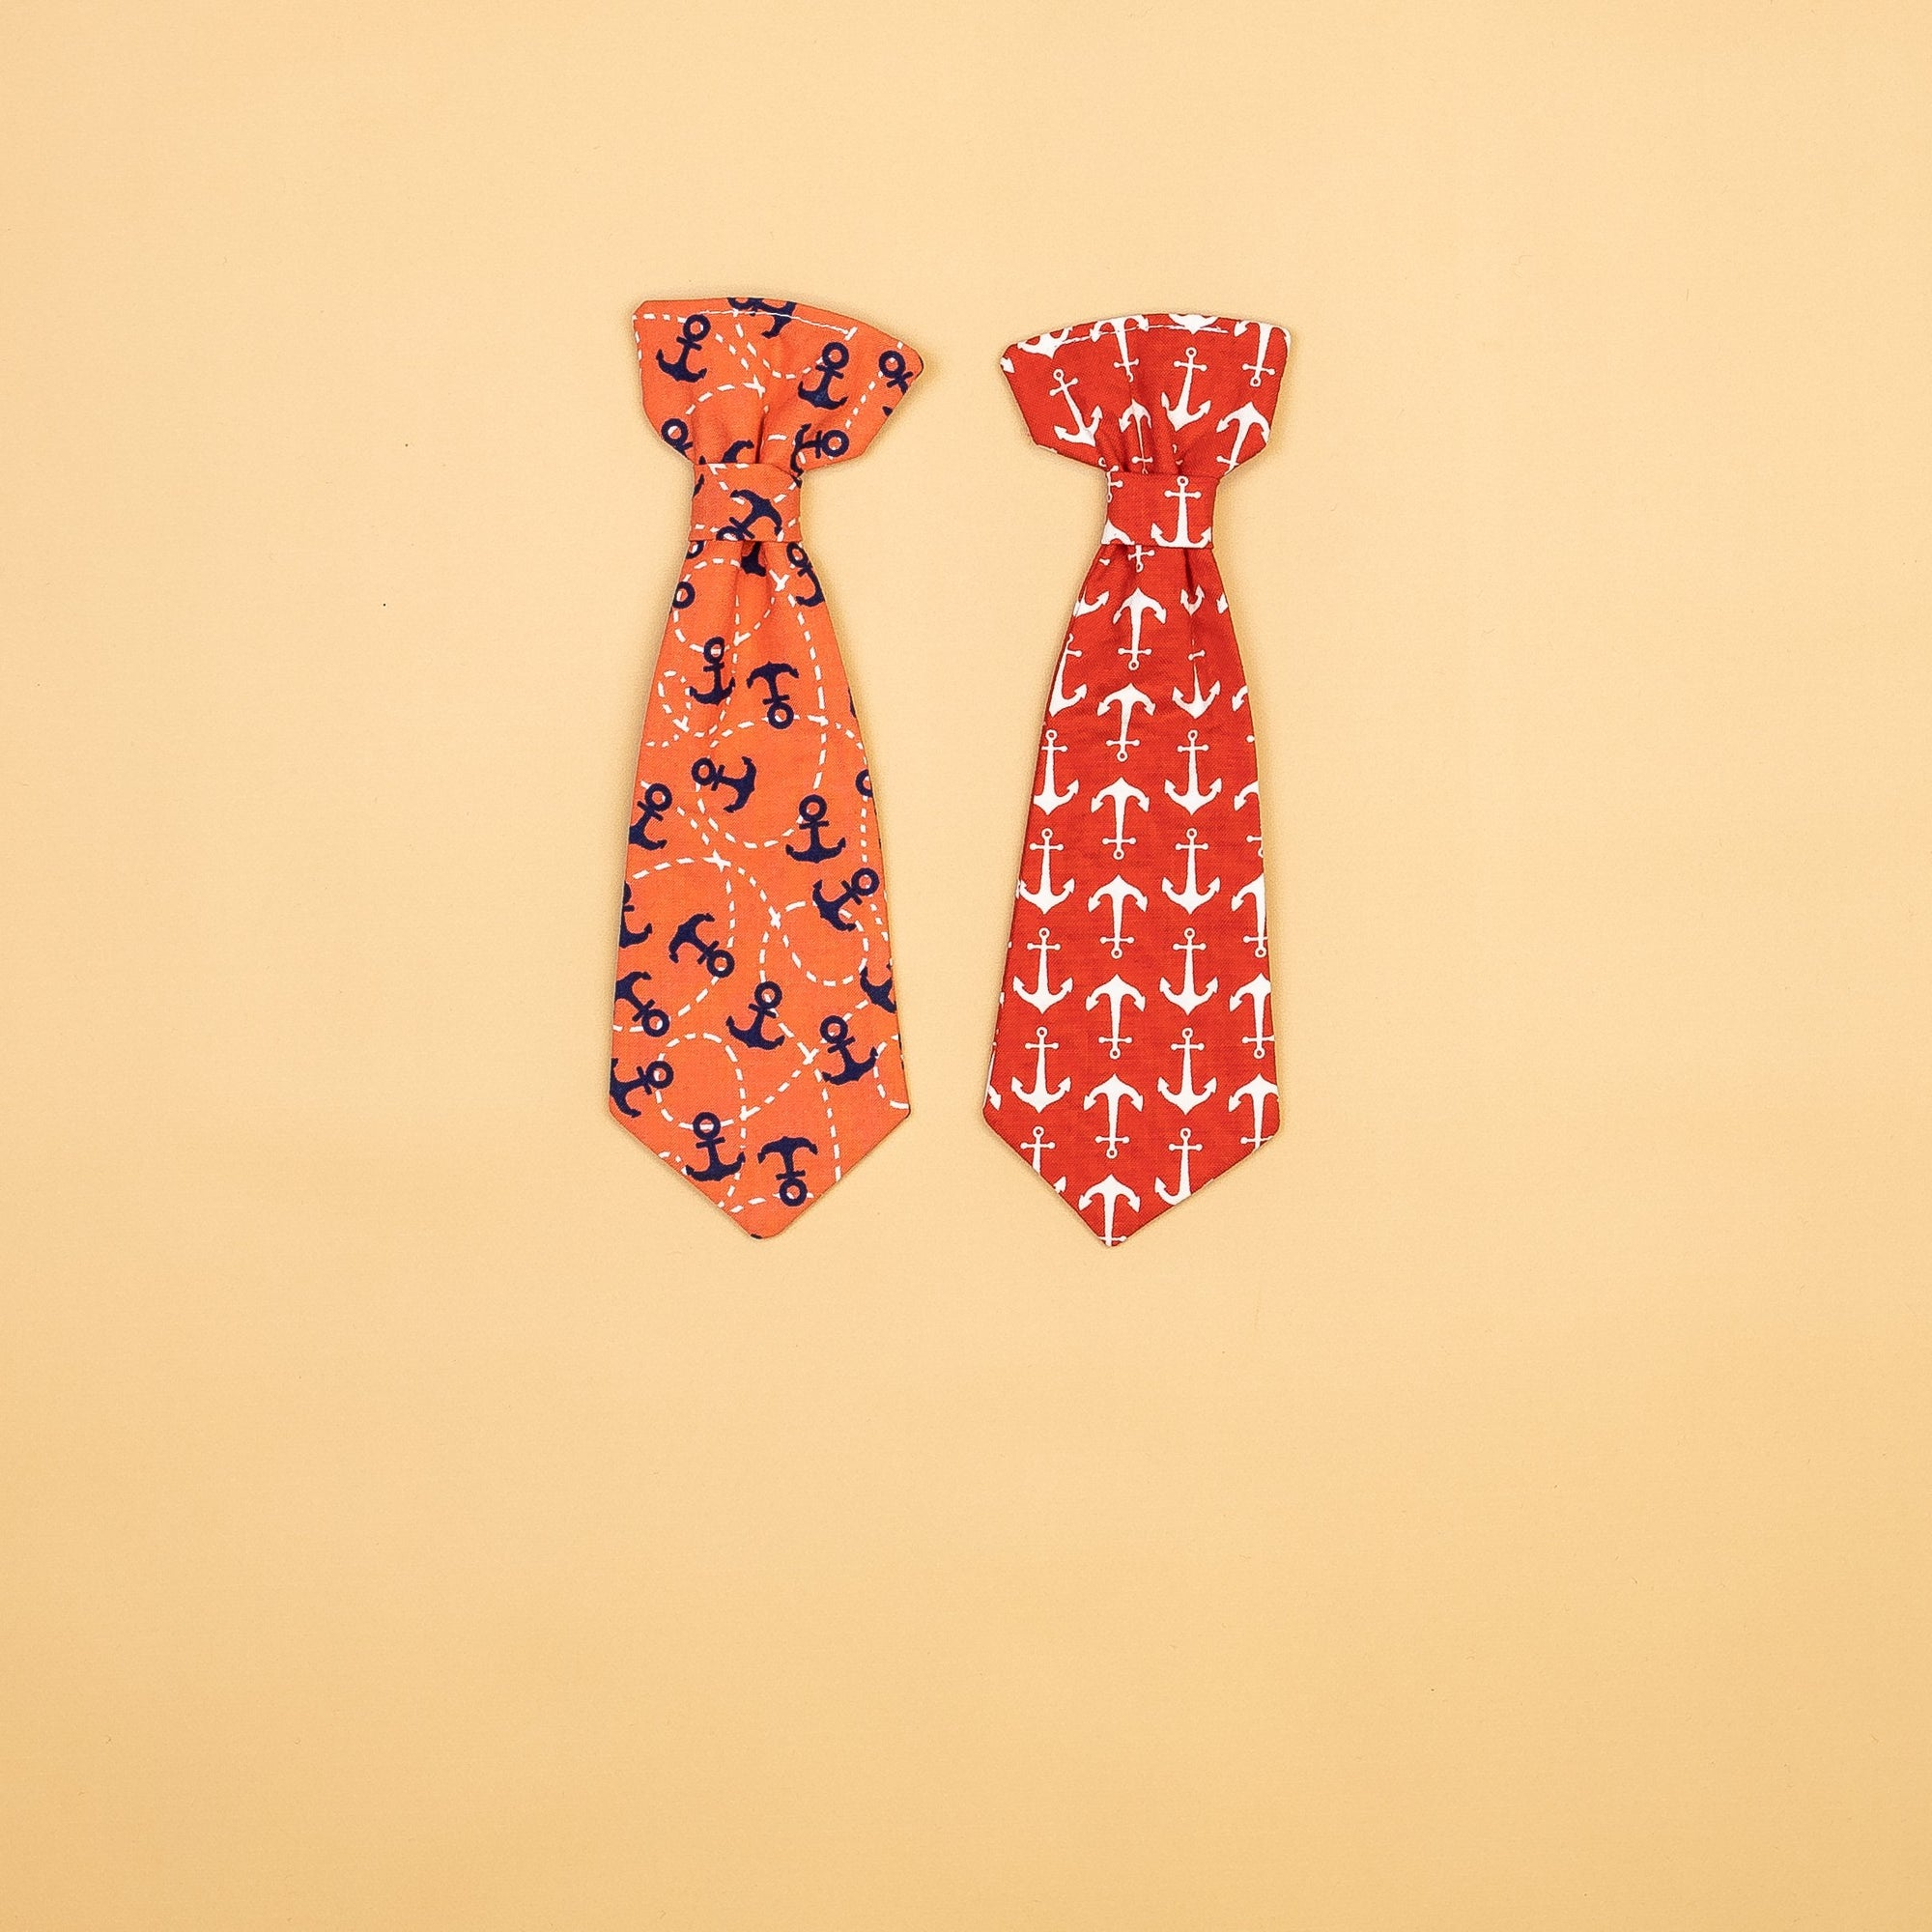 Cuddle Sleep Dream extras Anchor Snap-On Ties